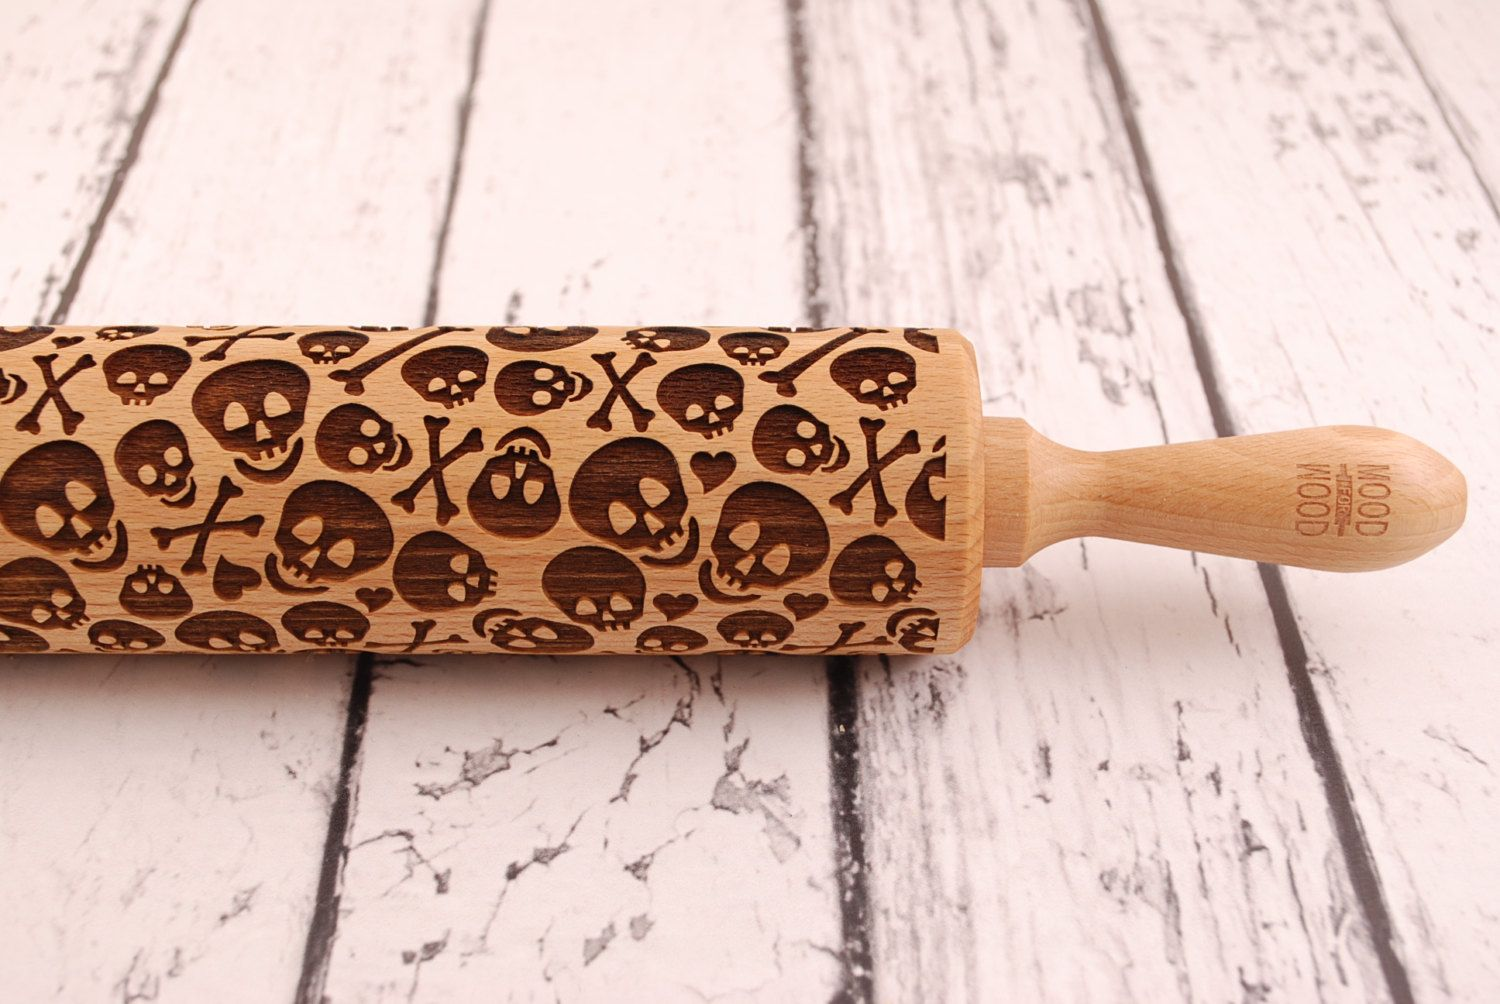 BATS perfect Halloween idea embossed engraved rolling pin for cookies